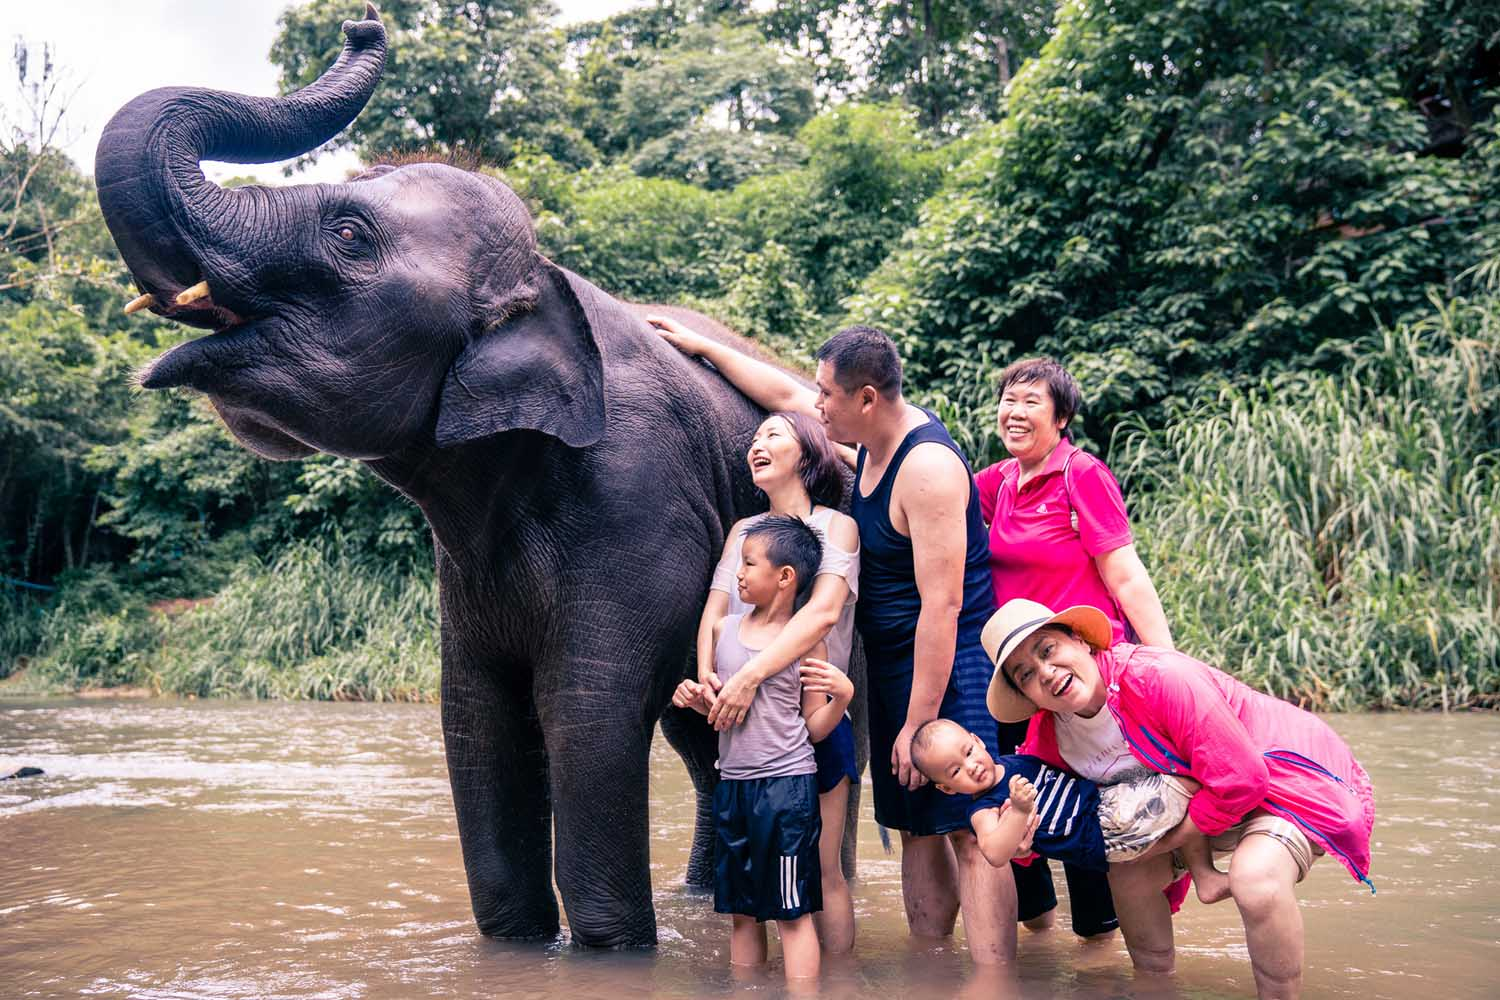 Family photos with elephants